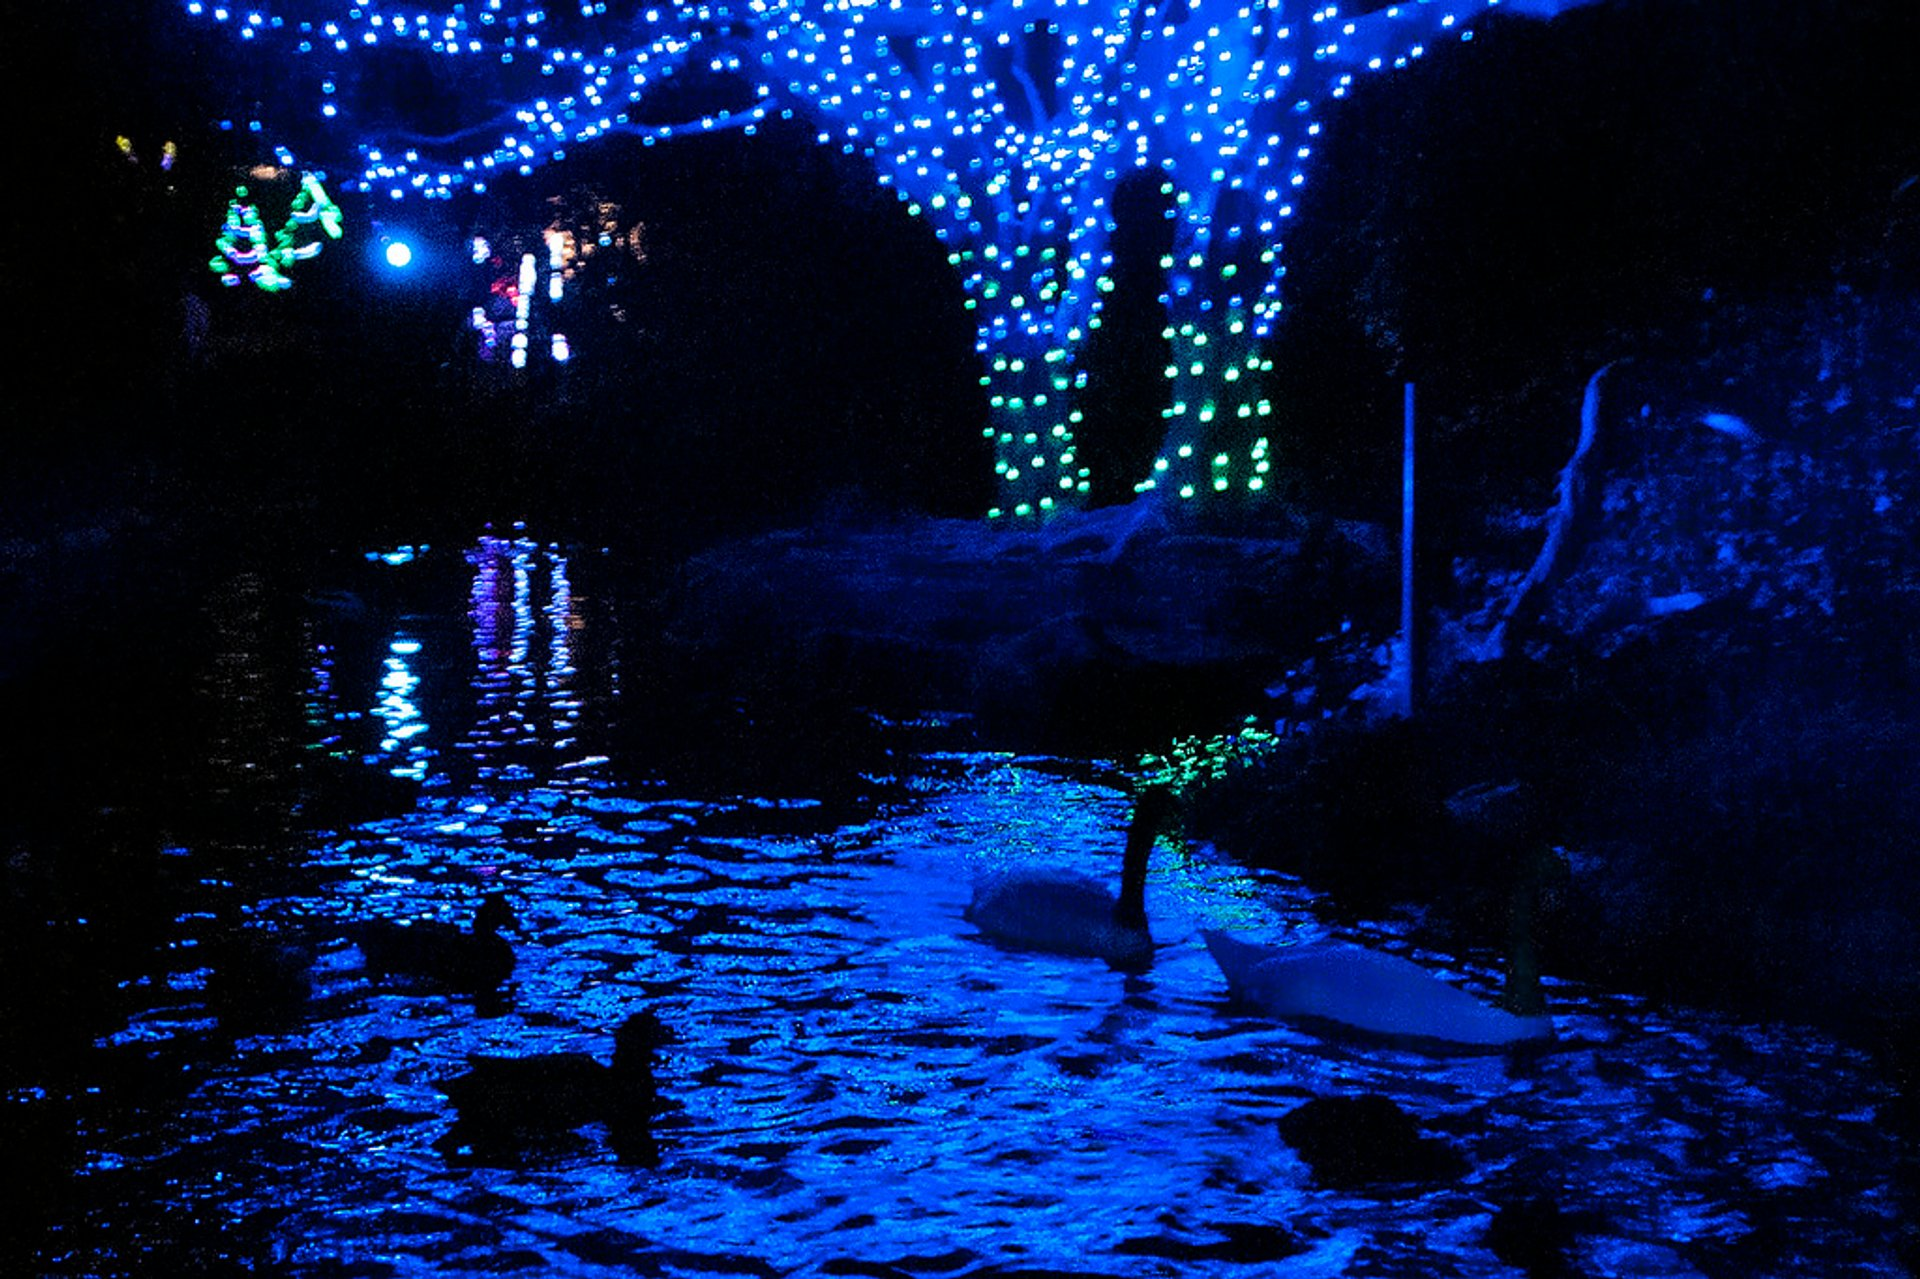 Swan pond at the L.A. Zoo, illuminated for the holidays. 2019